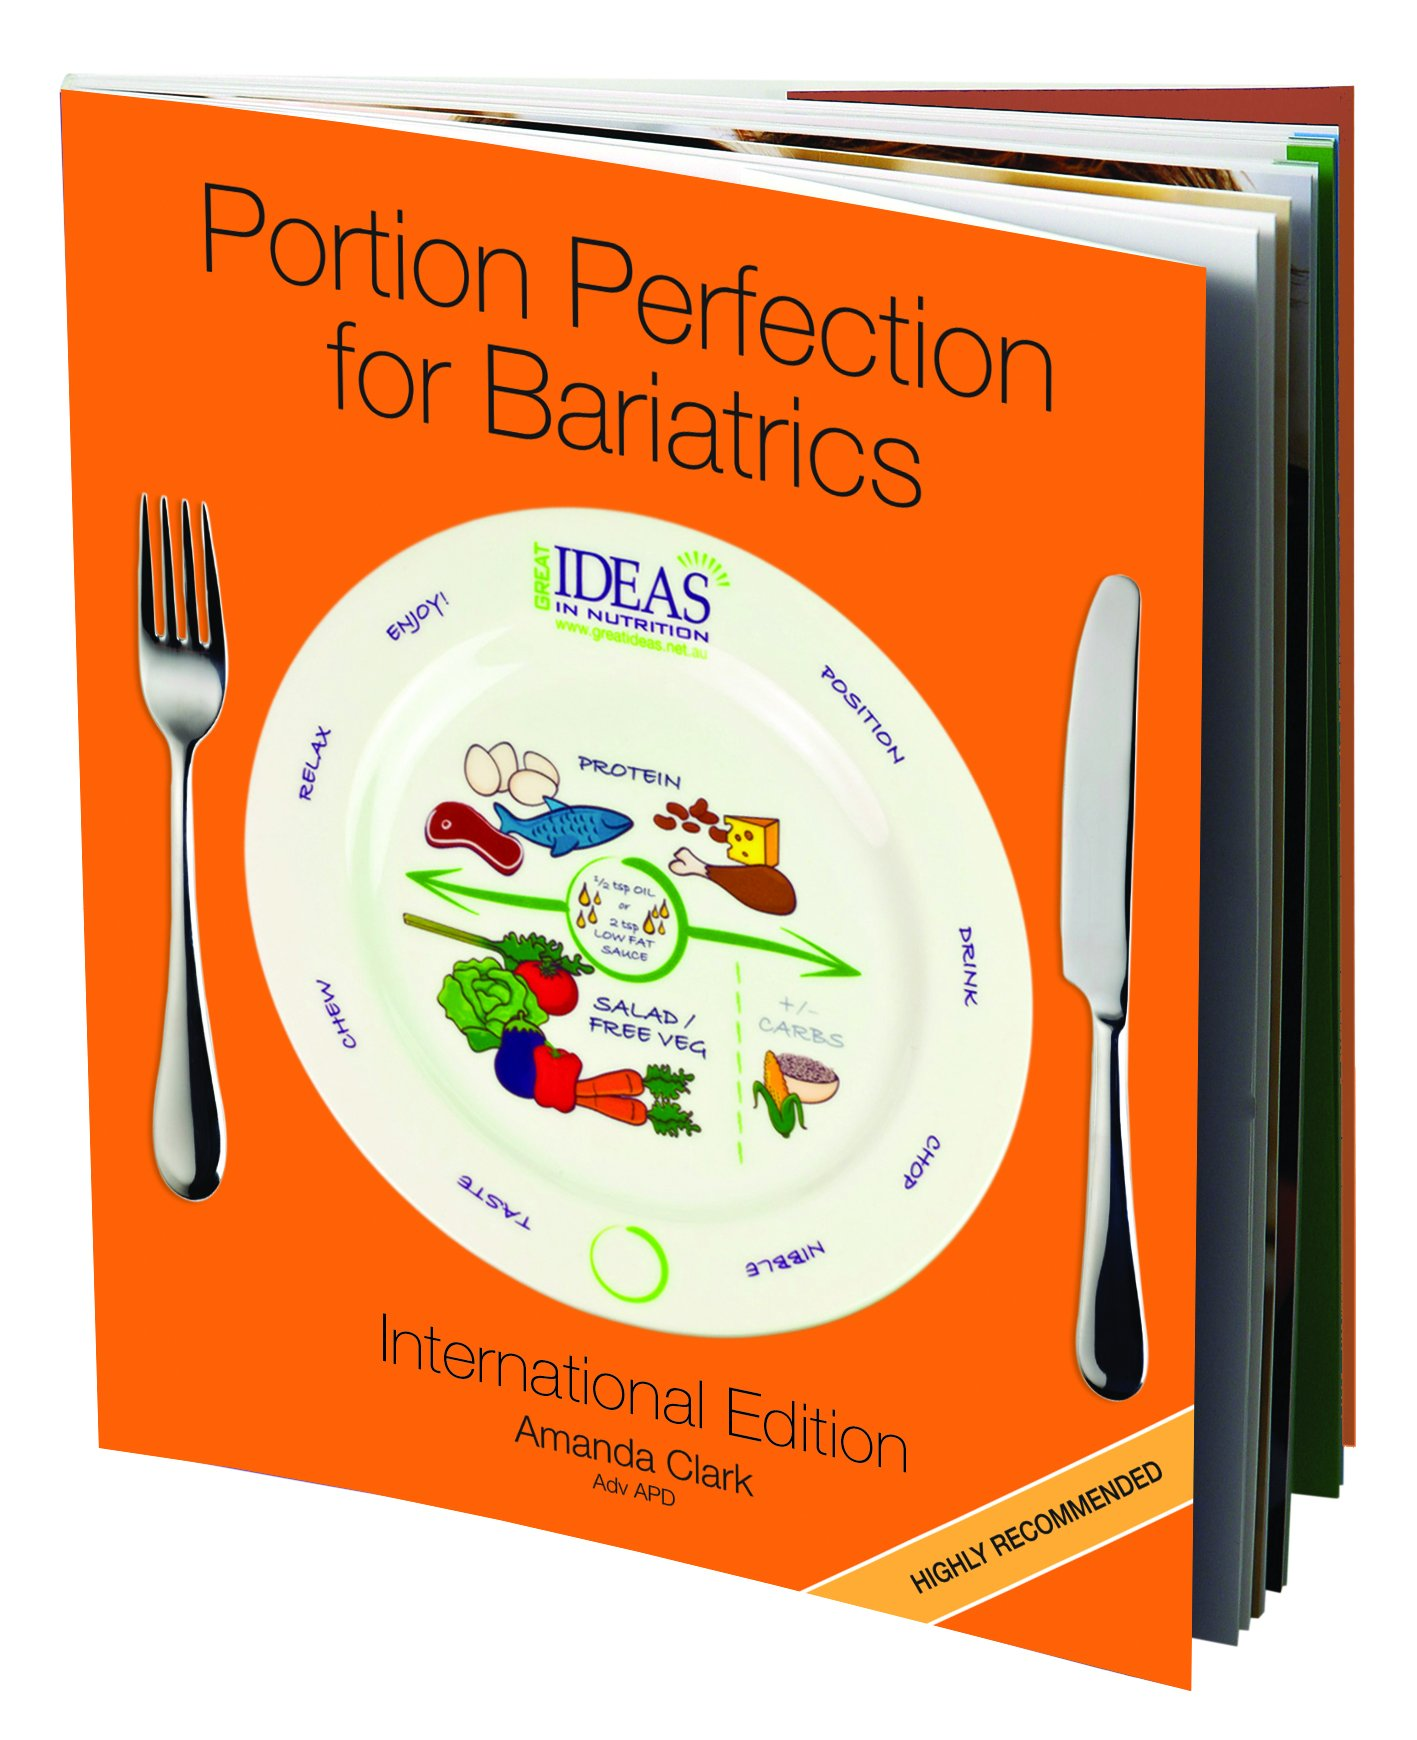 Bariatric Cookbook Surgery Weight Loss Program Kit Easy Tools for Portion Control Dieting After Sleeve Gastrectomy, Gastric Bypass, Balloon & Banding & Free Bonus Vegetable Cookbook by Portion Perfection (Image #2)